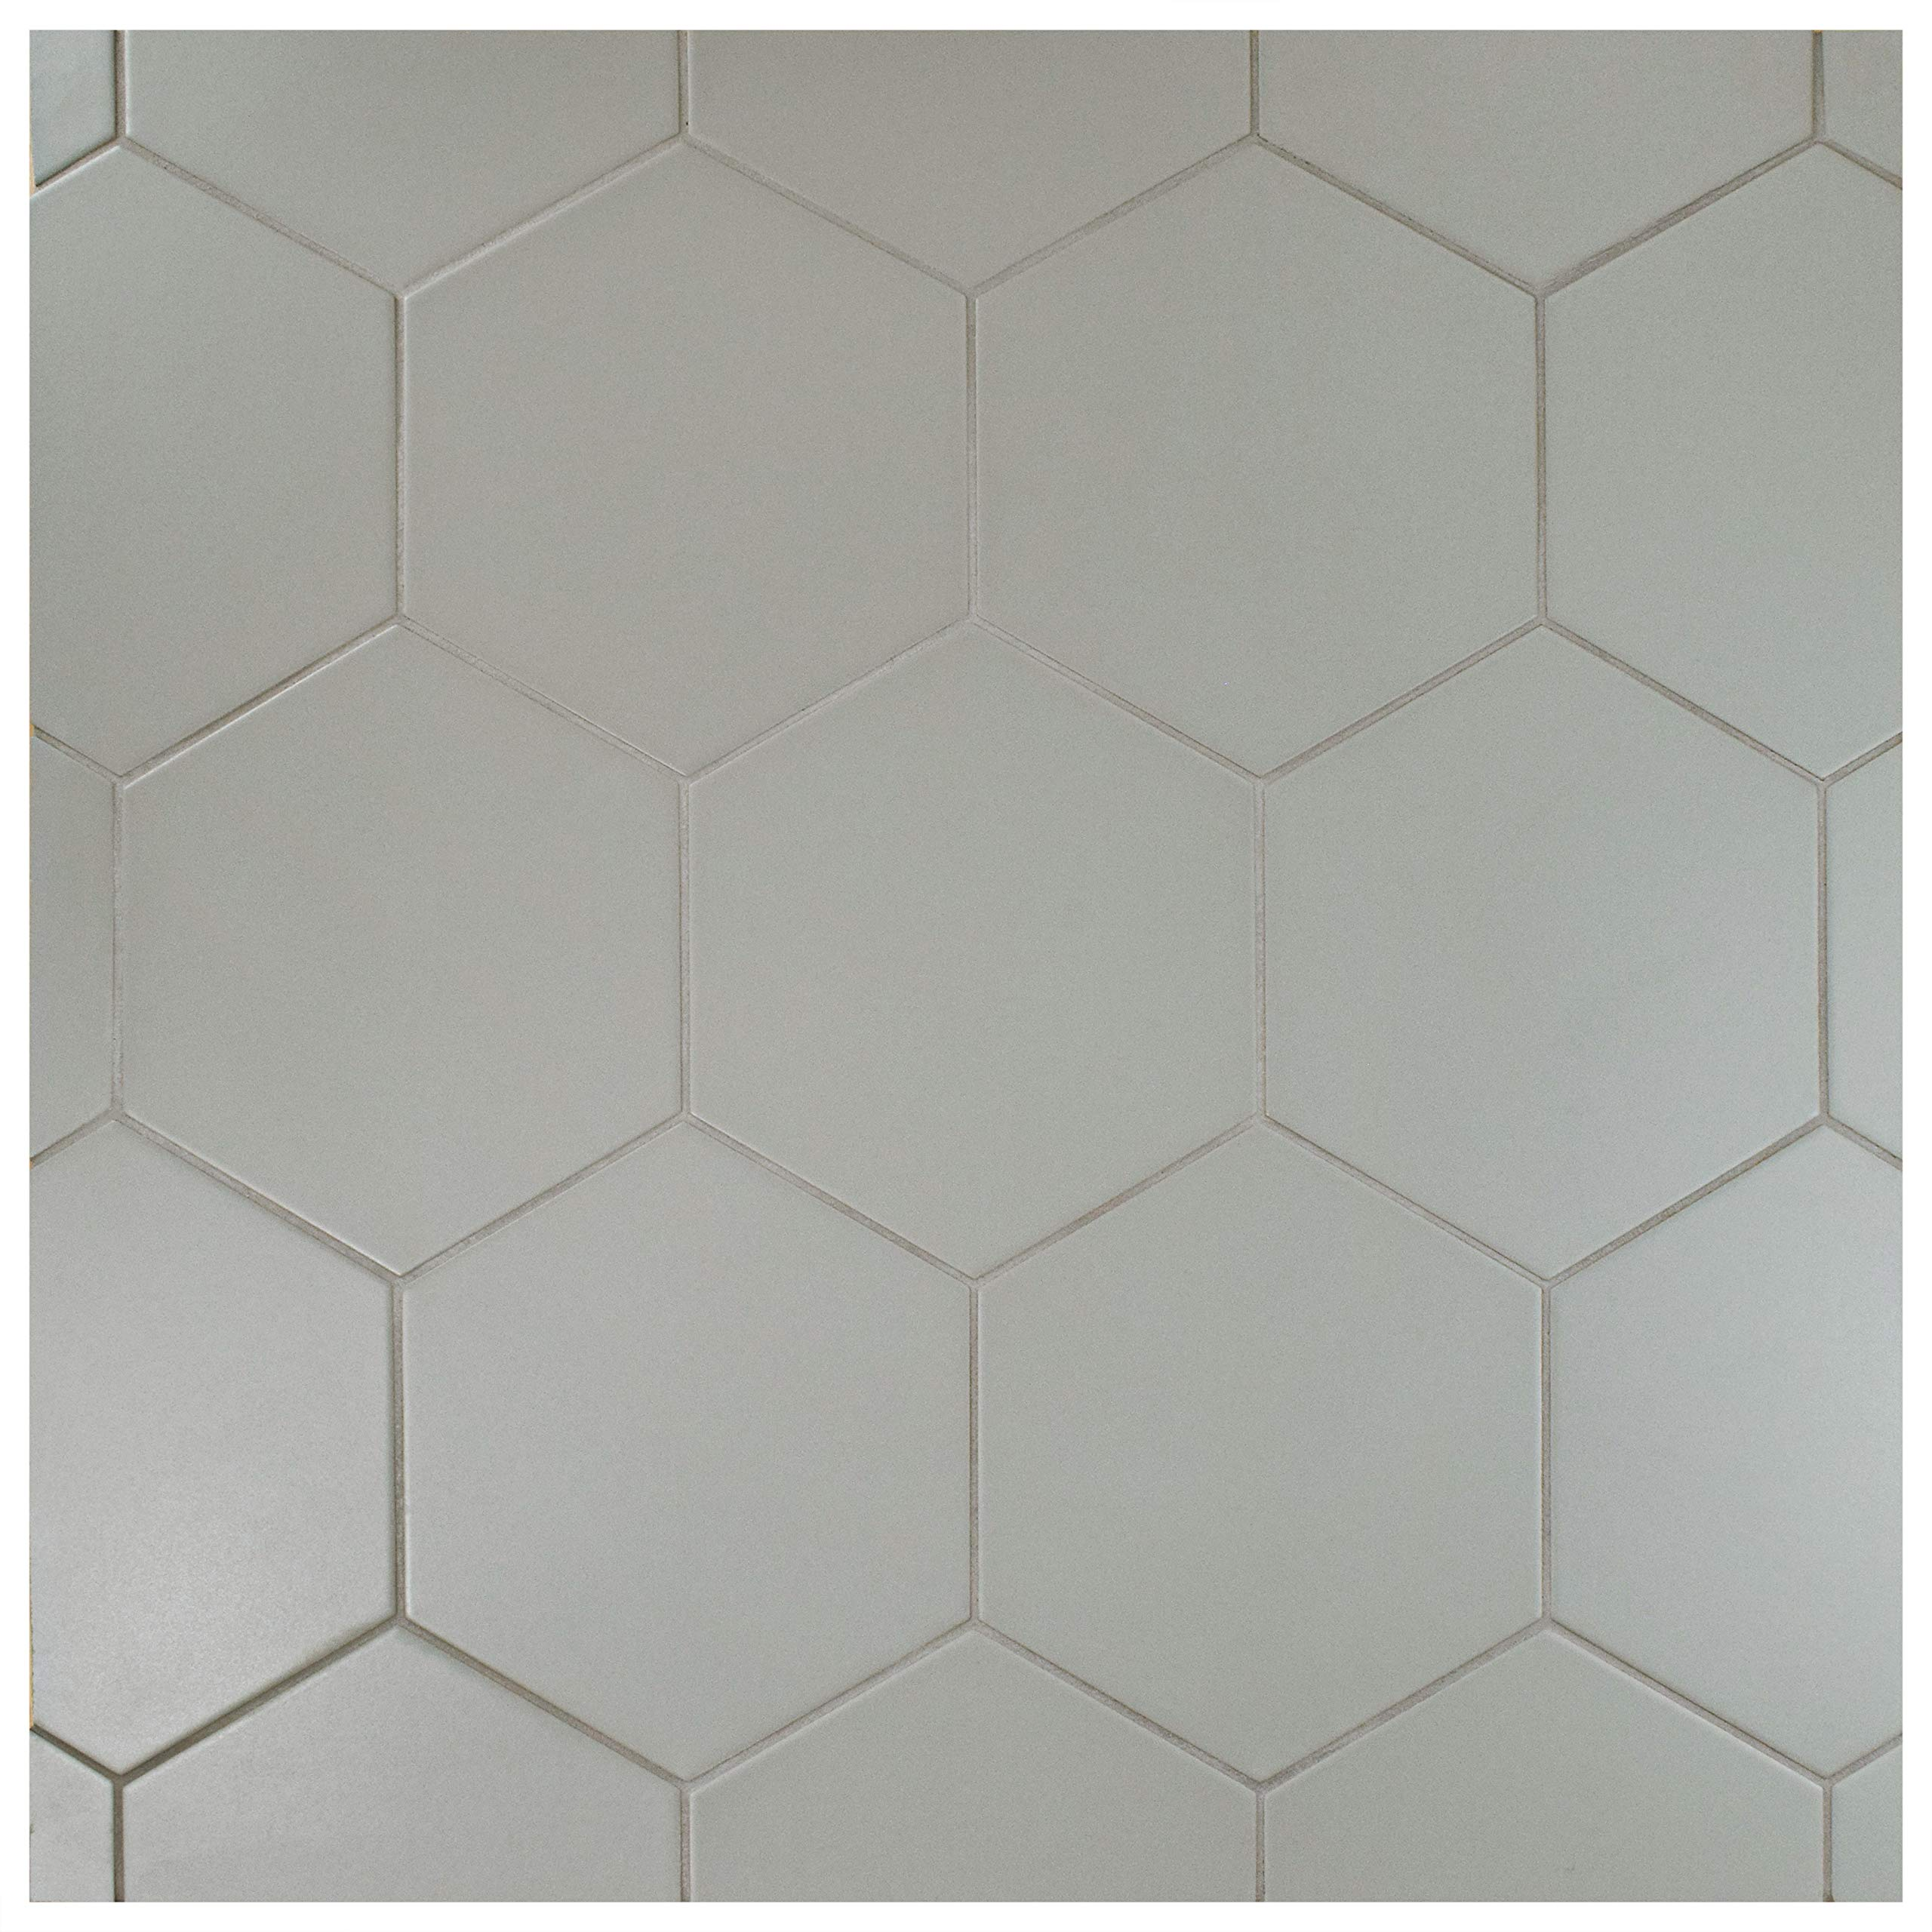 SomerTile FCD10STX Abrique Hex Porcelain Floor and Wall, 8.63'' x 9.88'', Silver Tile 8.625'' x 9.875'' 25 Piece by SOMERTILE (Image #12)